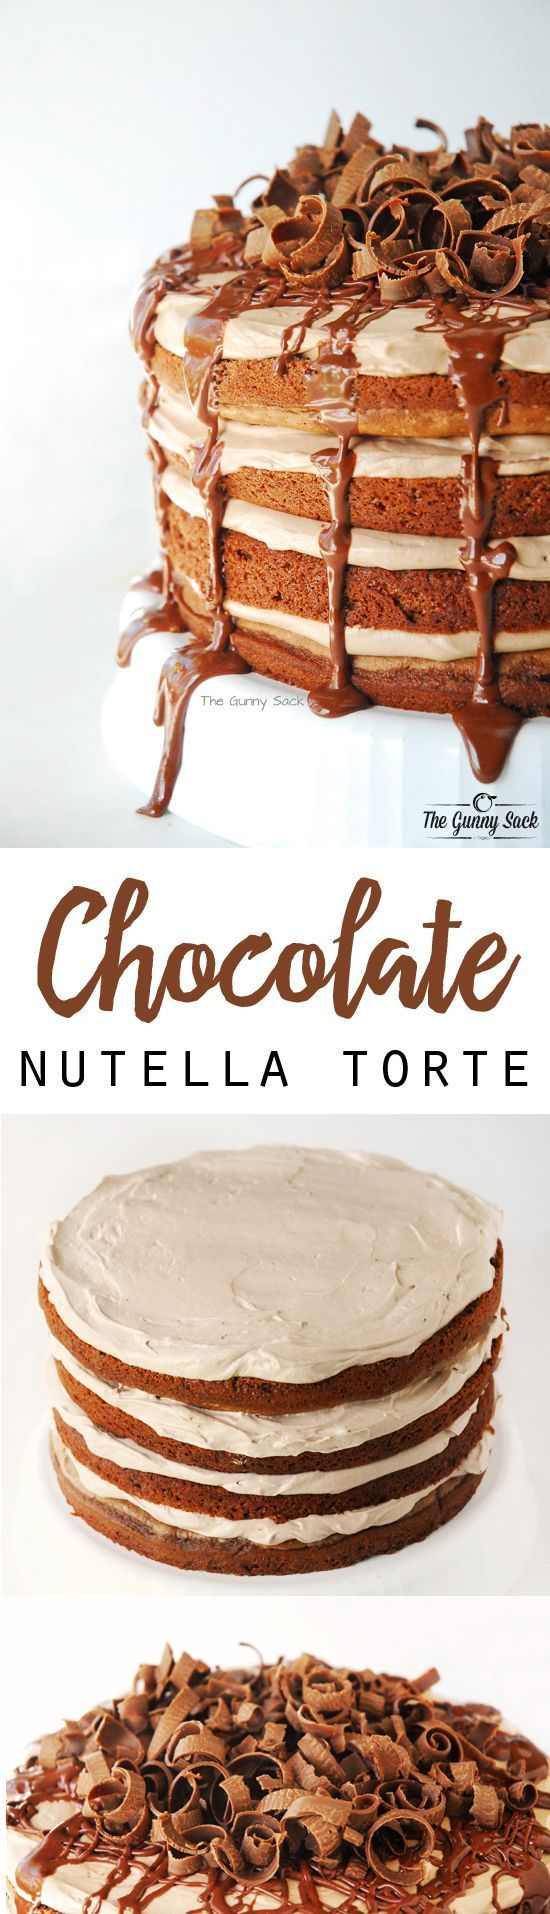 This Nutella Chocolate Torte recipe is a chocolate layer cake filled with a Nutella mousse that is sure to impress!